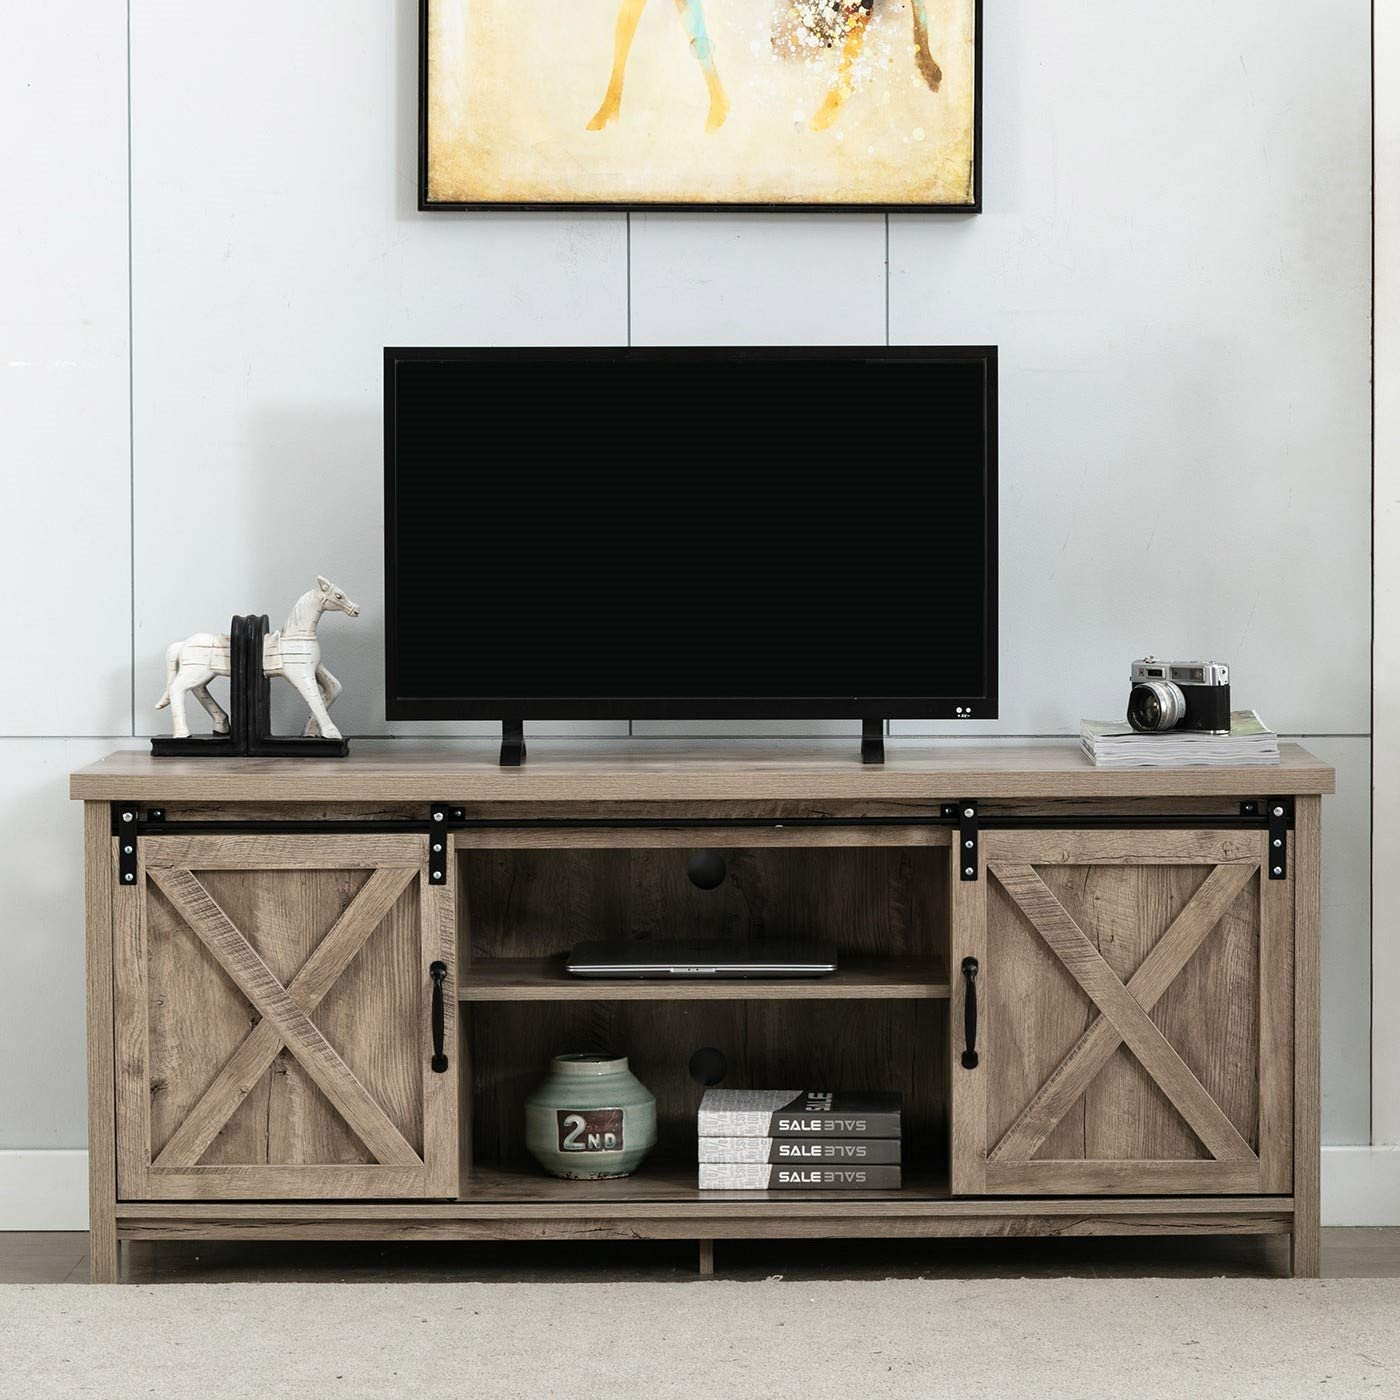 AUXSOUL Farmhouse Wood TV Stand with 2 Sliding Barndoorfor - Entertainment Center for 65 Inch TV Screen - Living Room Storage Cabinet - Tall Universal Stand, TV Table Media Furniture(Oak)